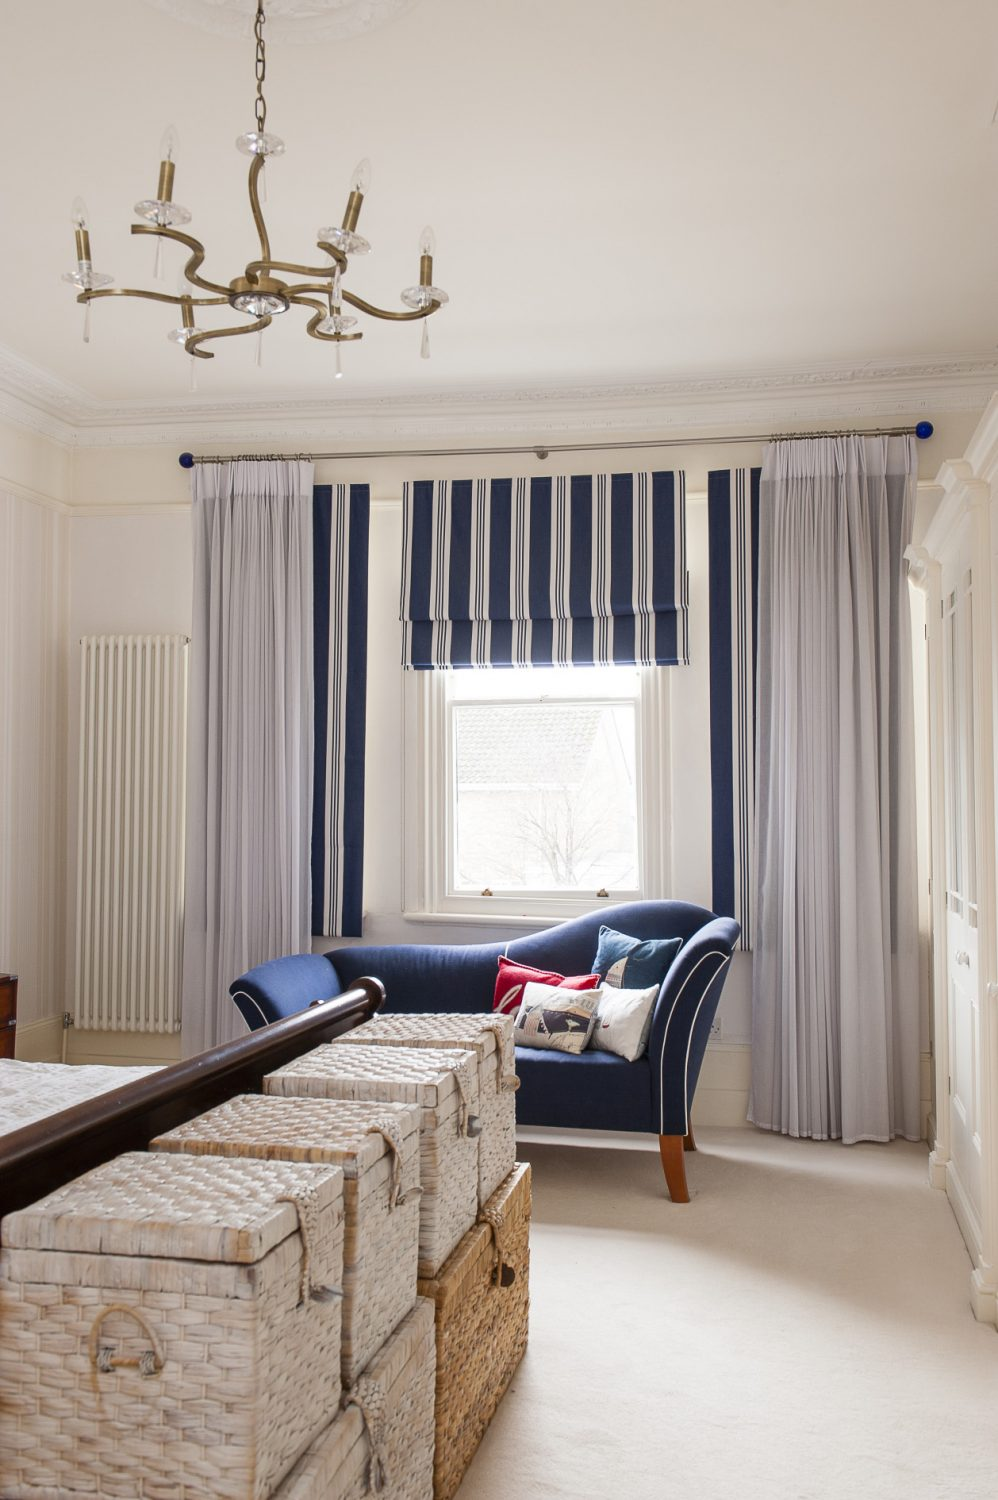 The master bedroom is one of the few places where, if you look very carefully at the sash windows, you can see where the doodlebug shifted the house